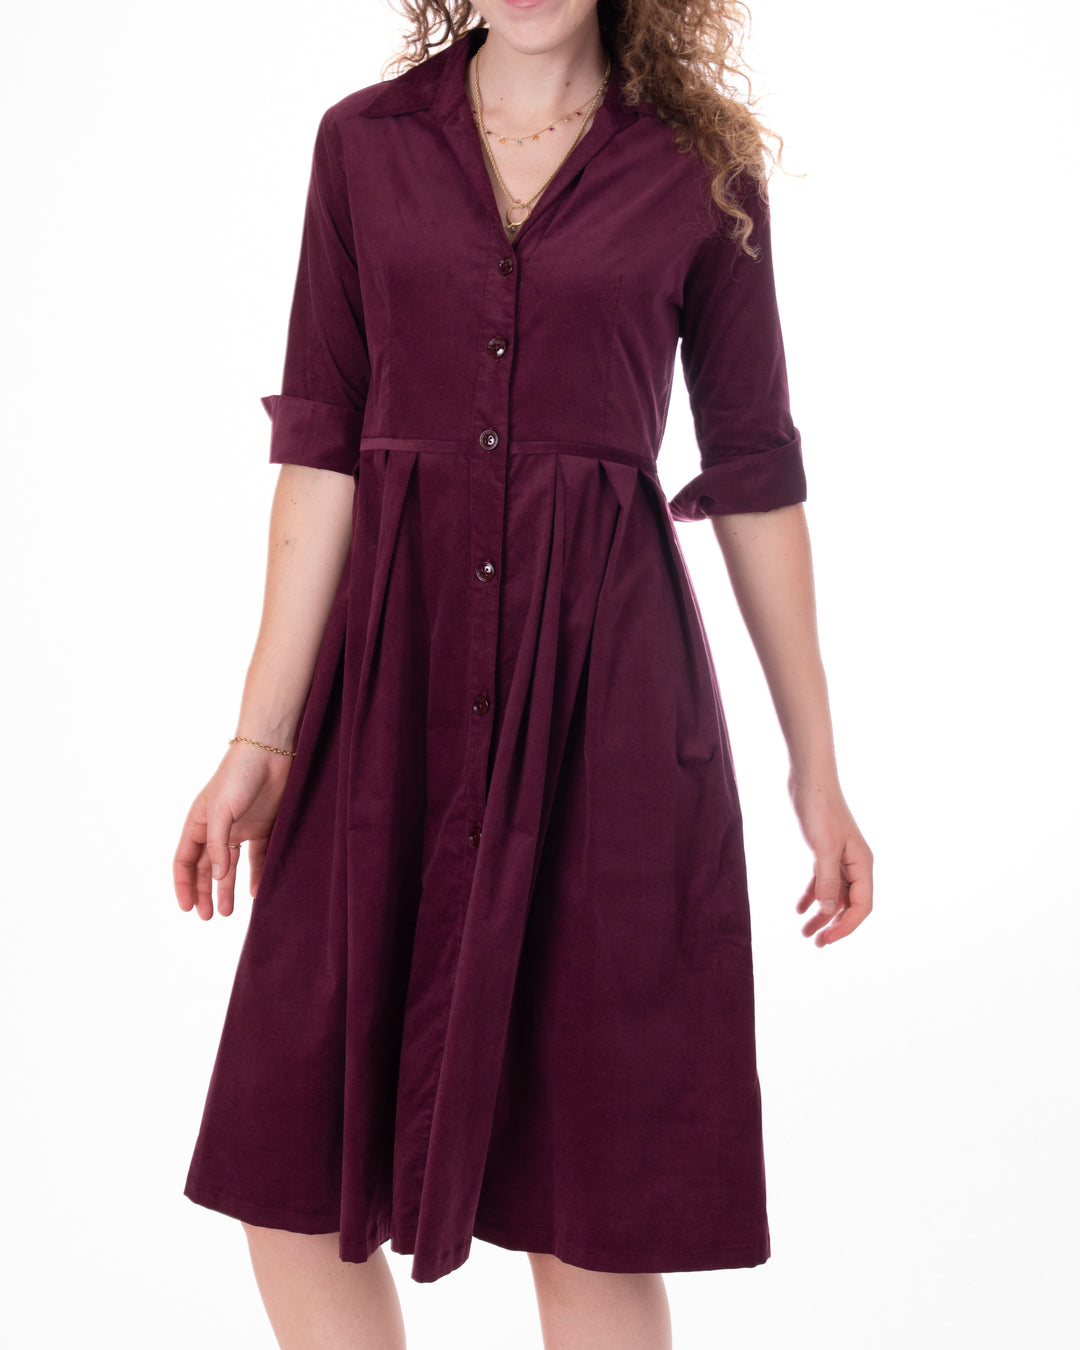 Corduroy Dress Pleat Waist